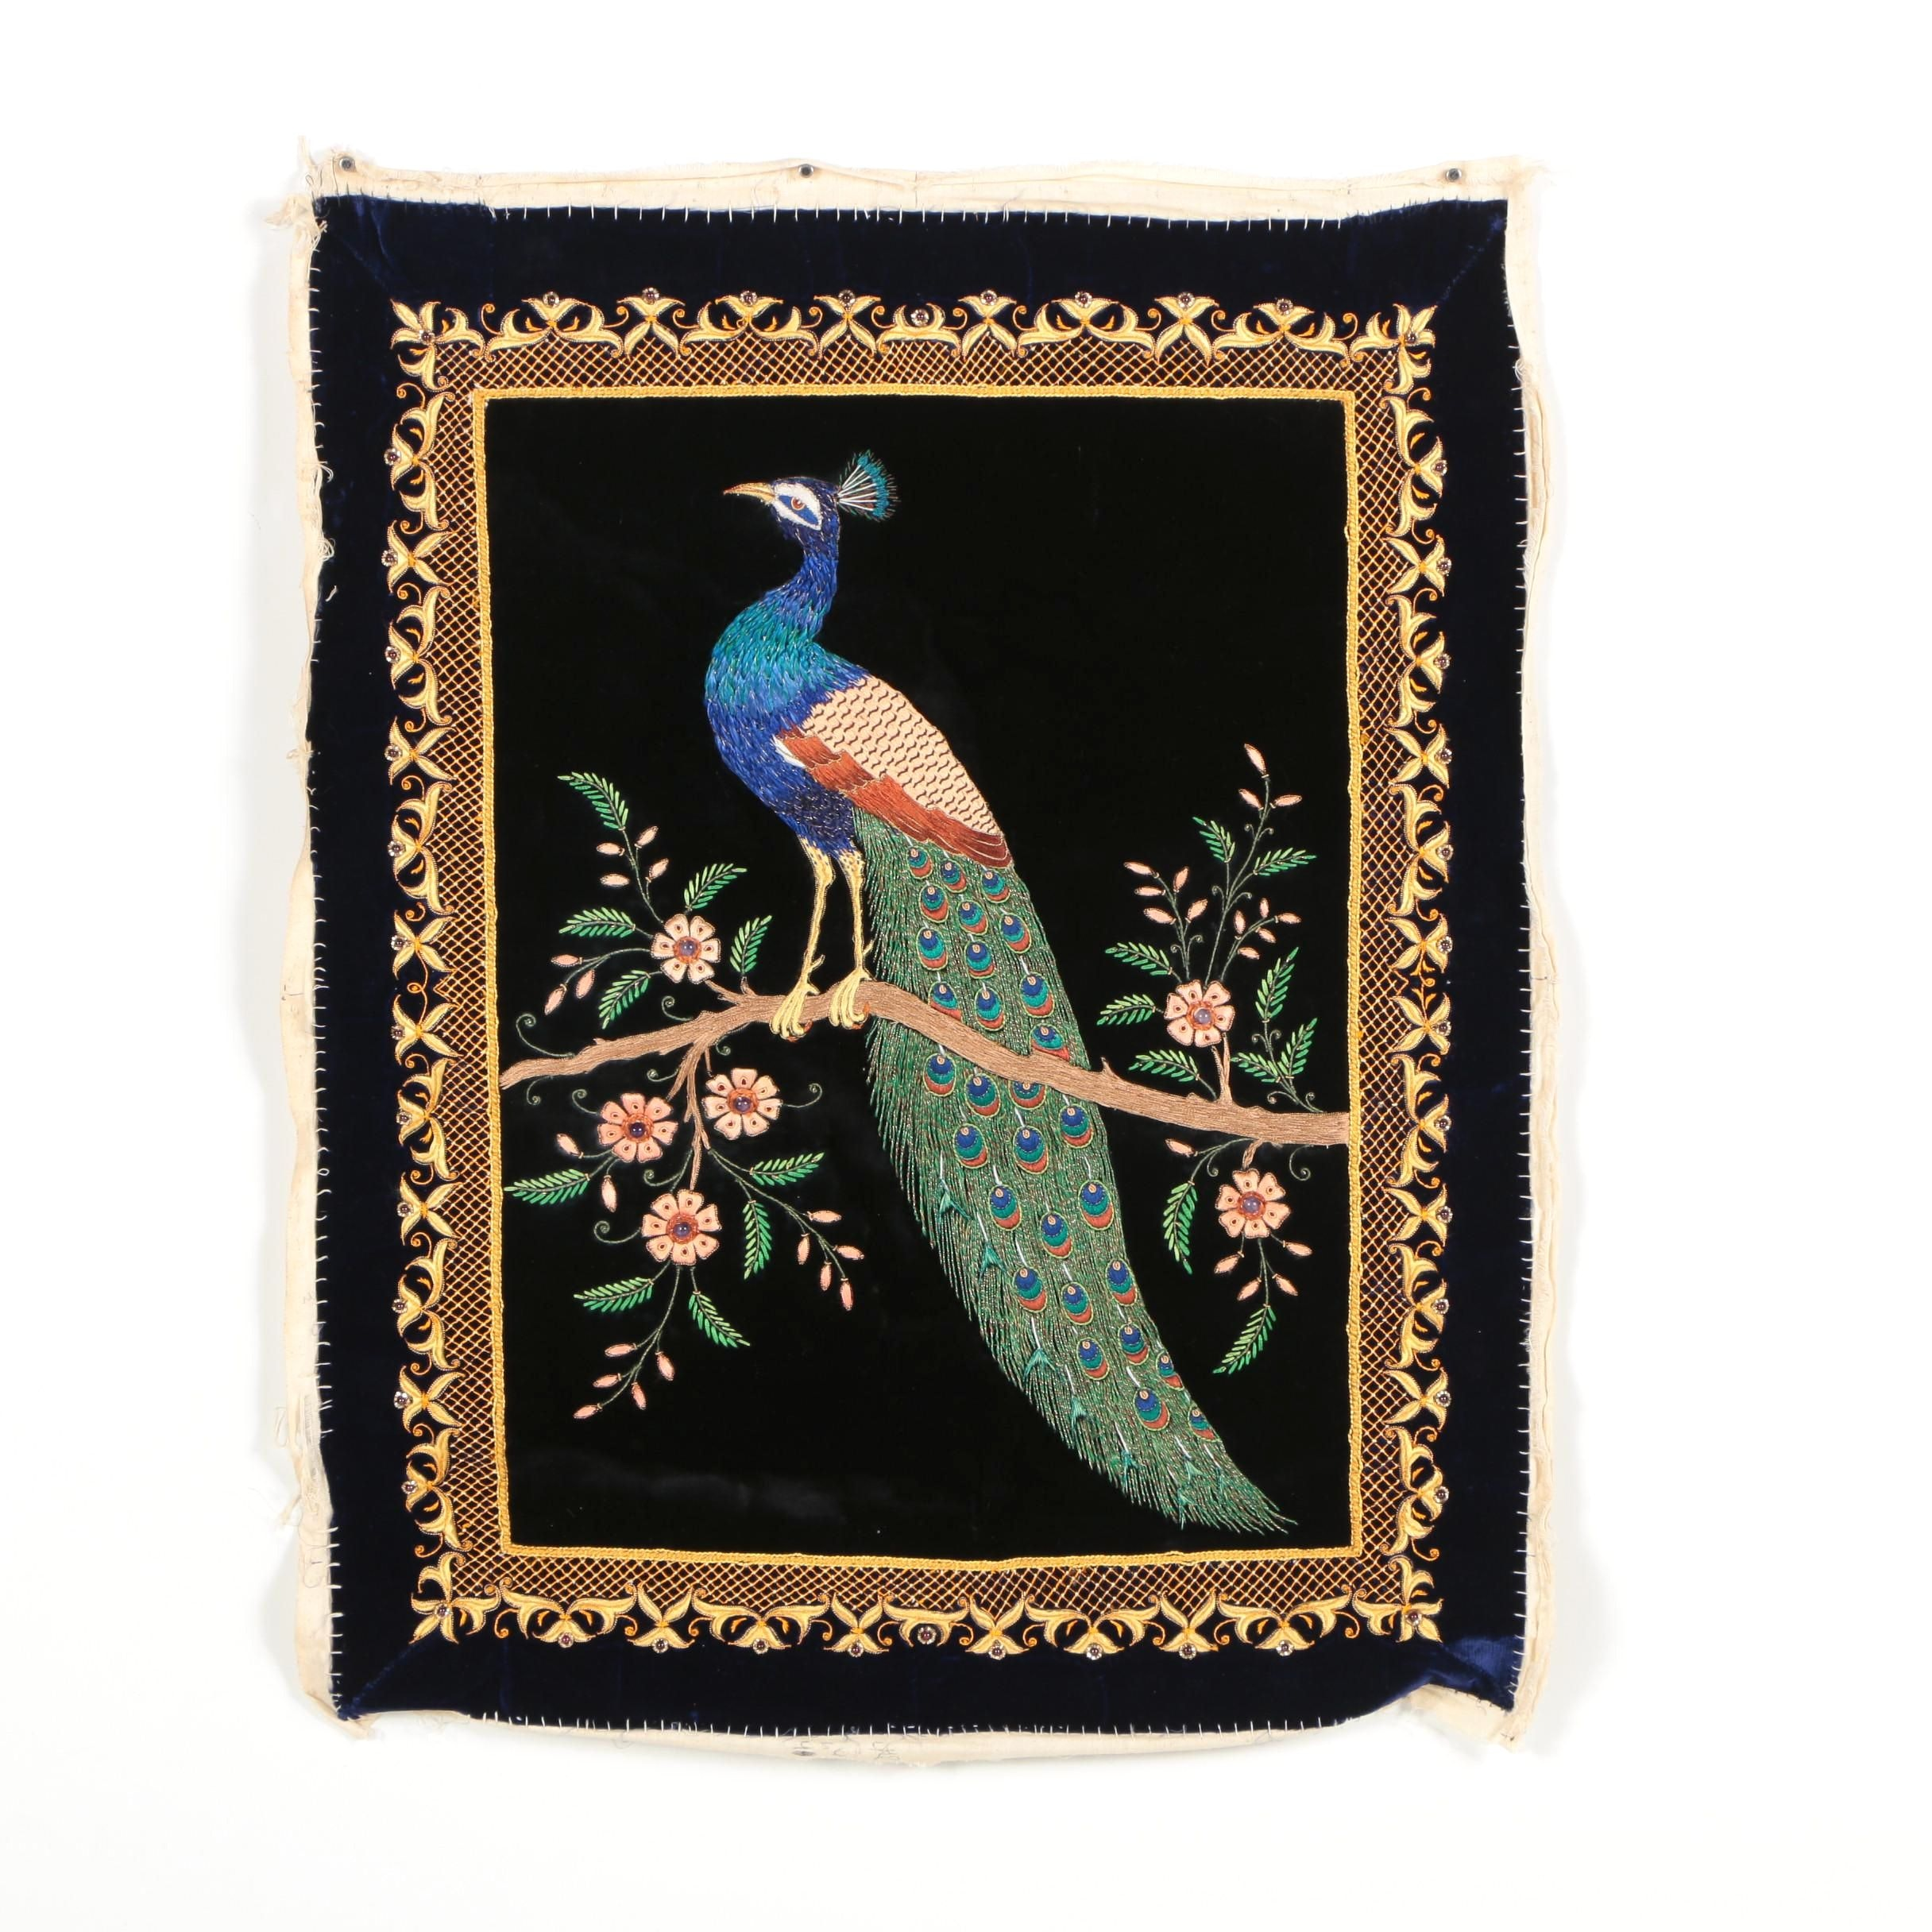 Handmade Embroidered Peacock Textile